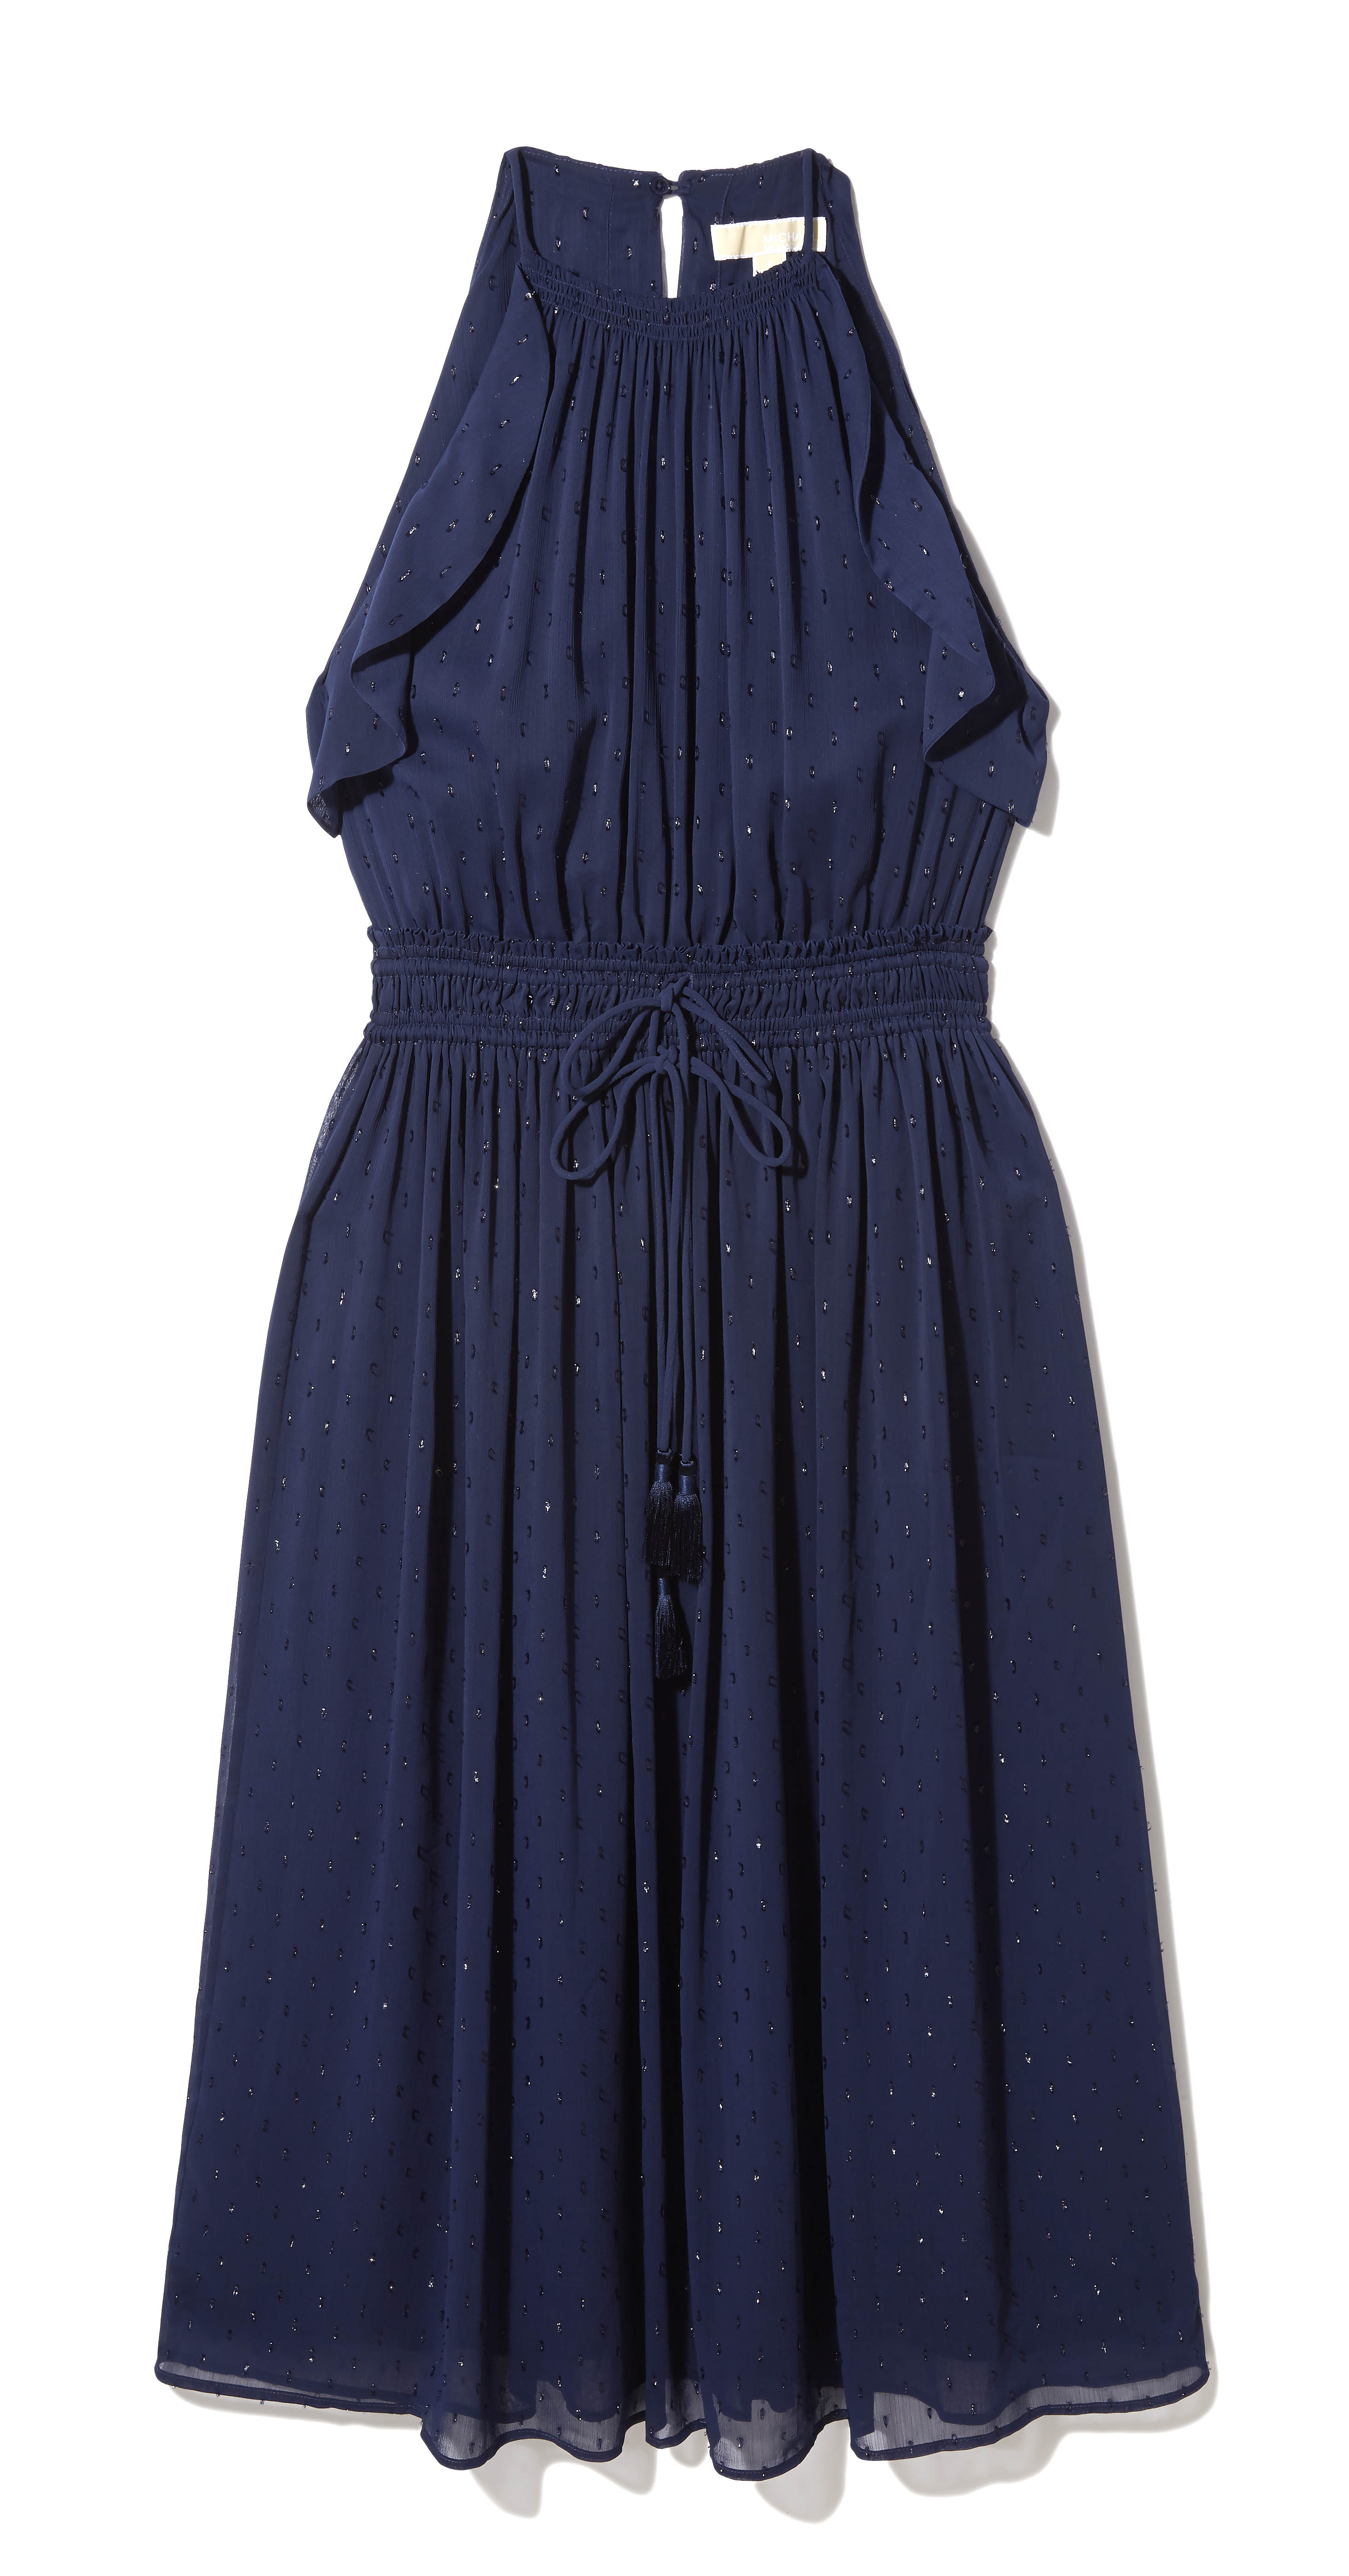 Michael Kors Navy Sleeveless Prom Dress